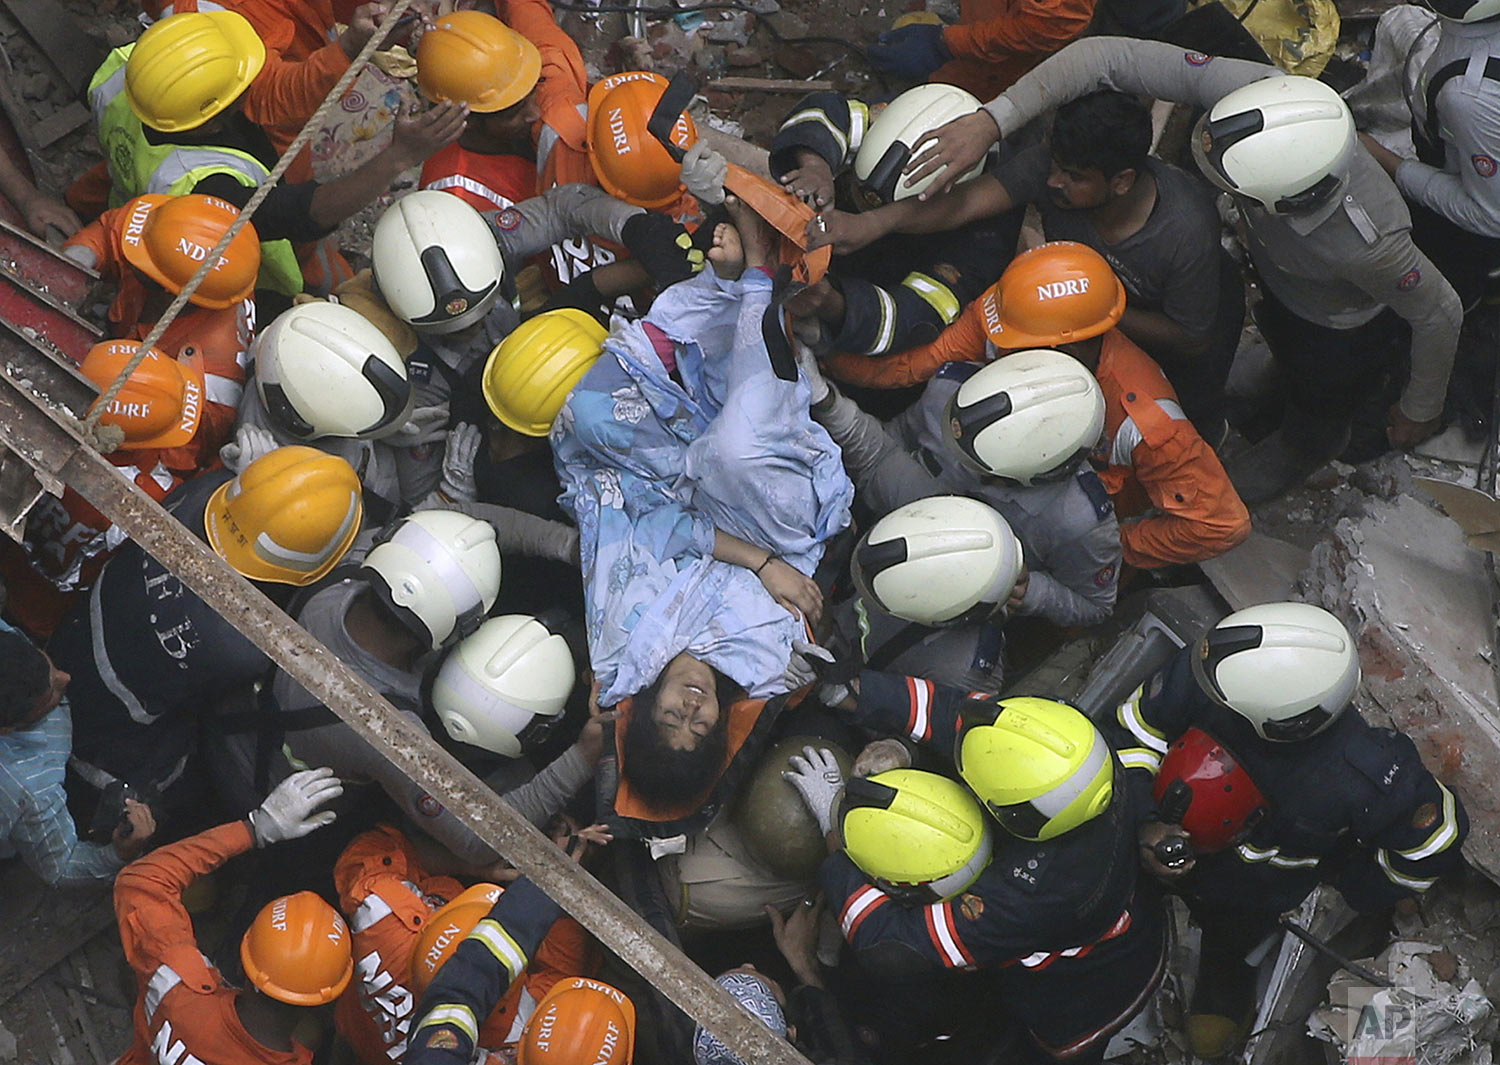 Rescuers carry out a survivor from the site of a building that collapsed in Mumbai, India, Tuesday, July 16, 2019.  (AP Photo/Rajanish Kakade)